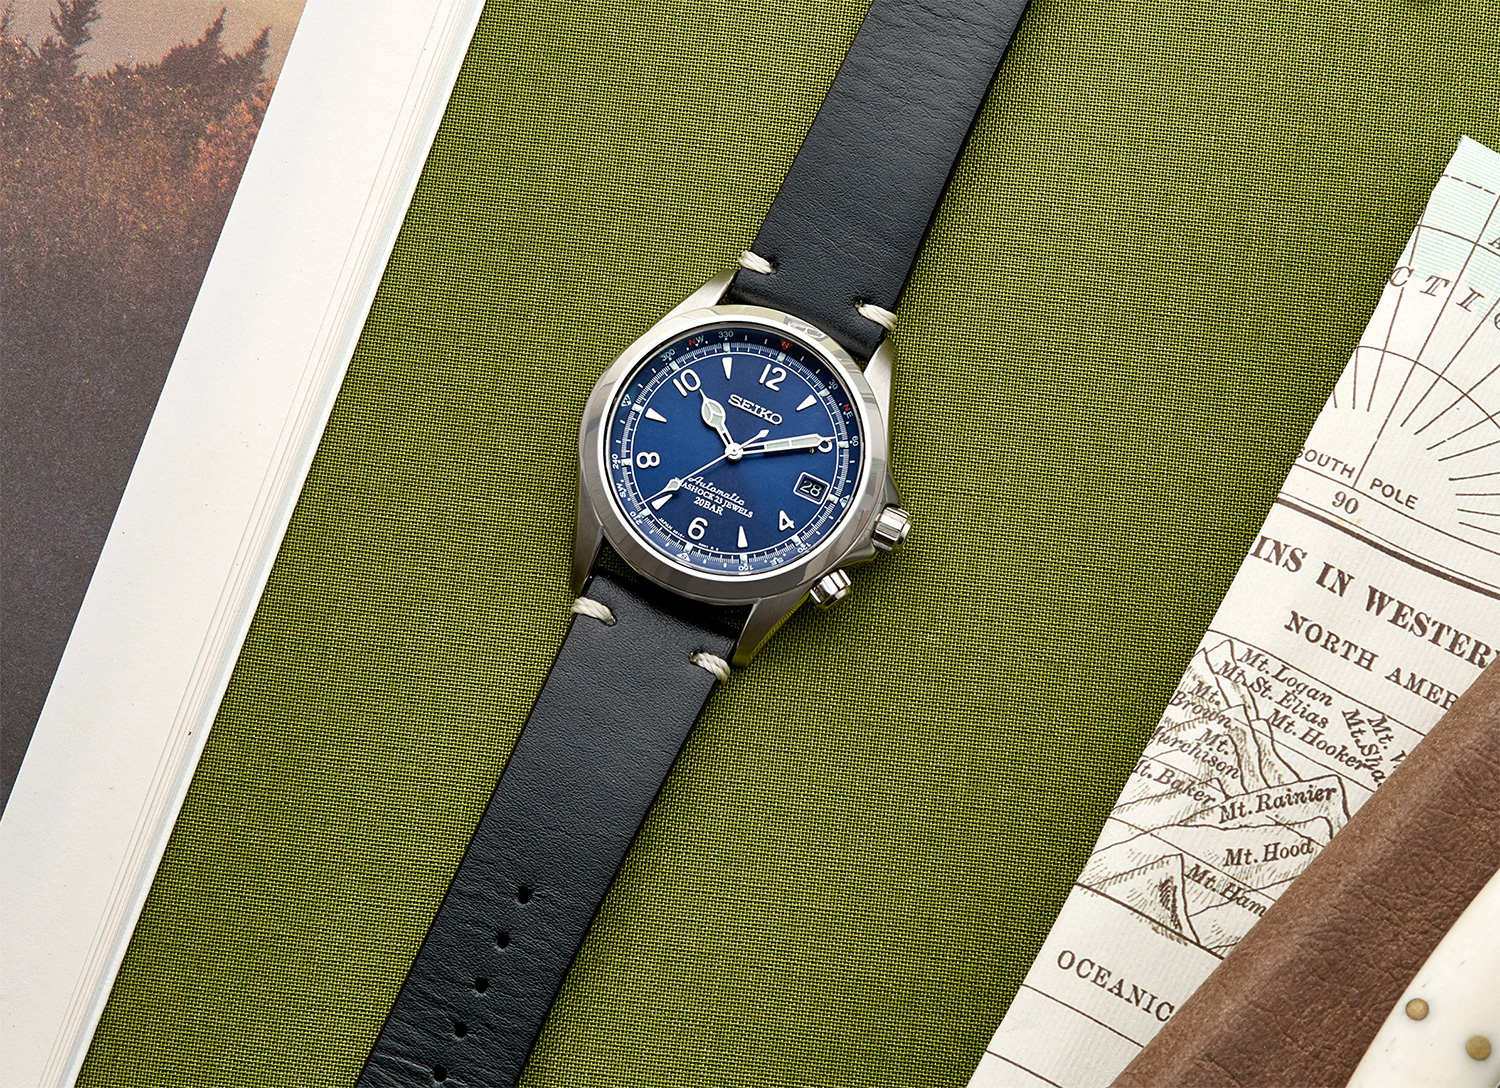 Seiko Offers Its Iconic Alpinist Automatic in a Limited Edition at werd.com